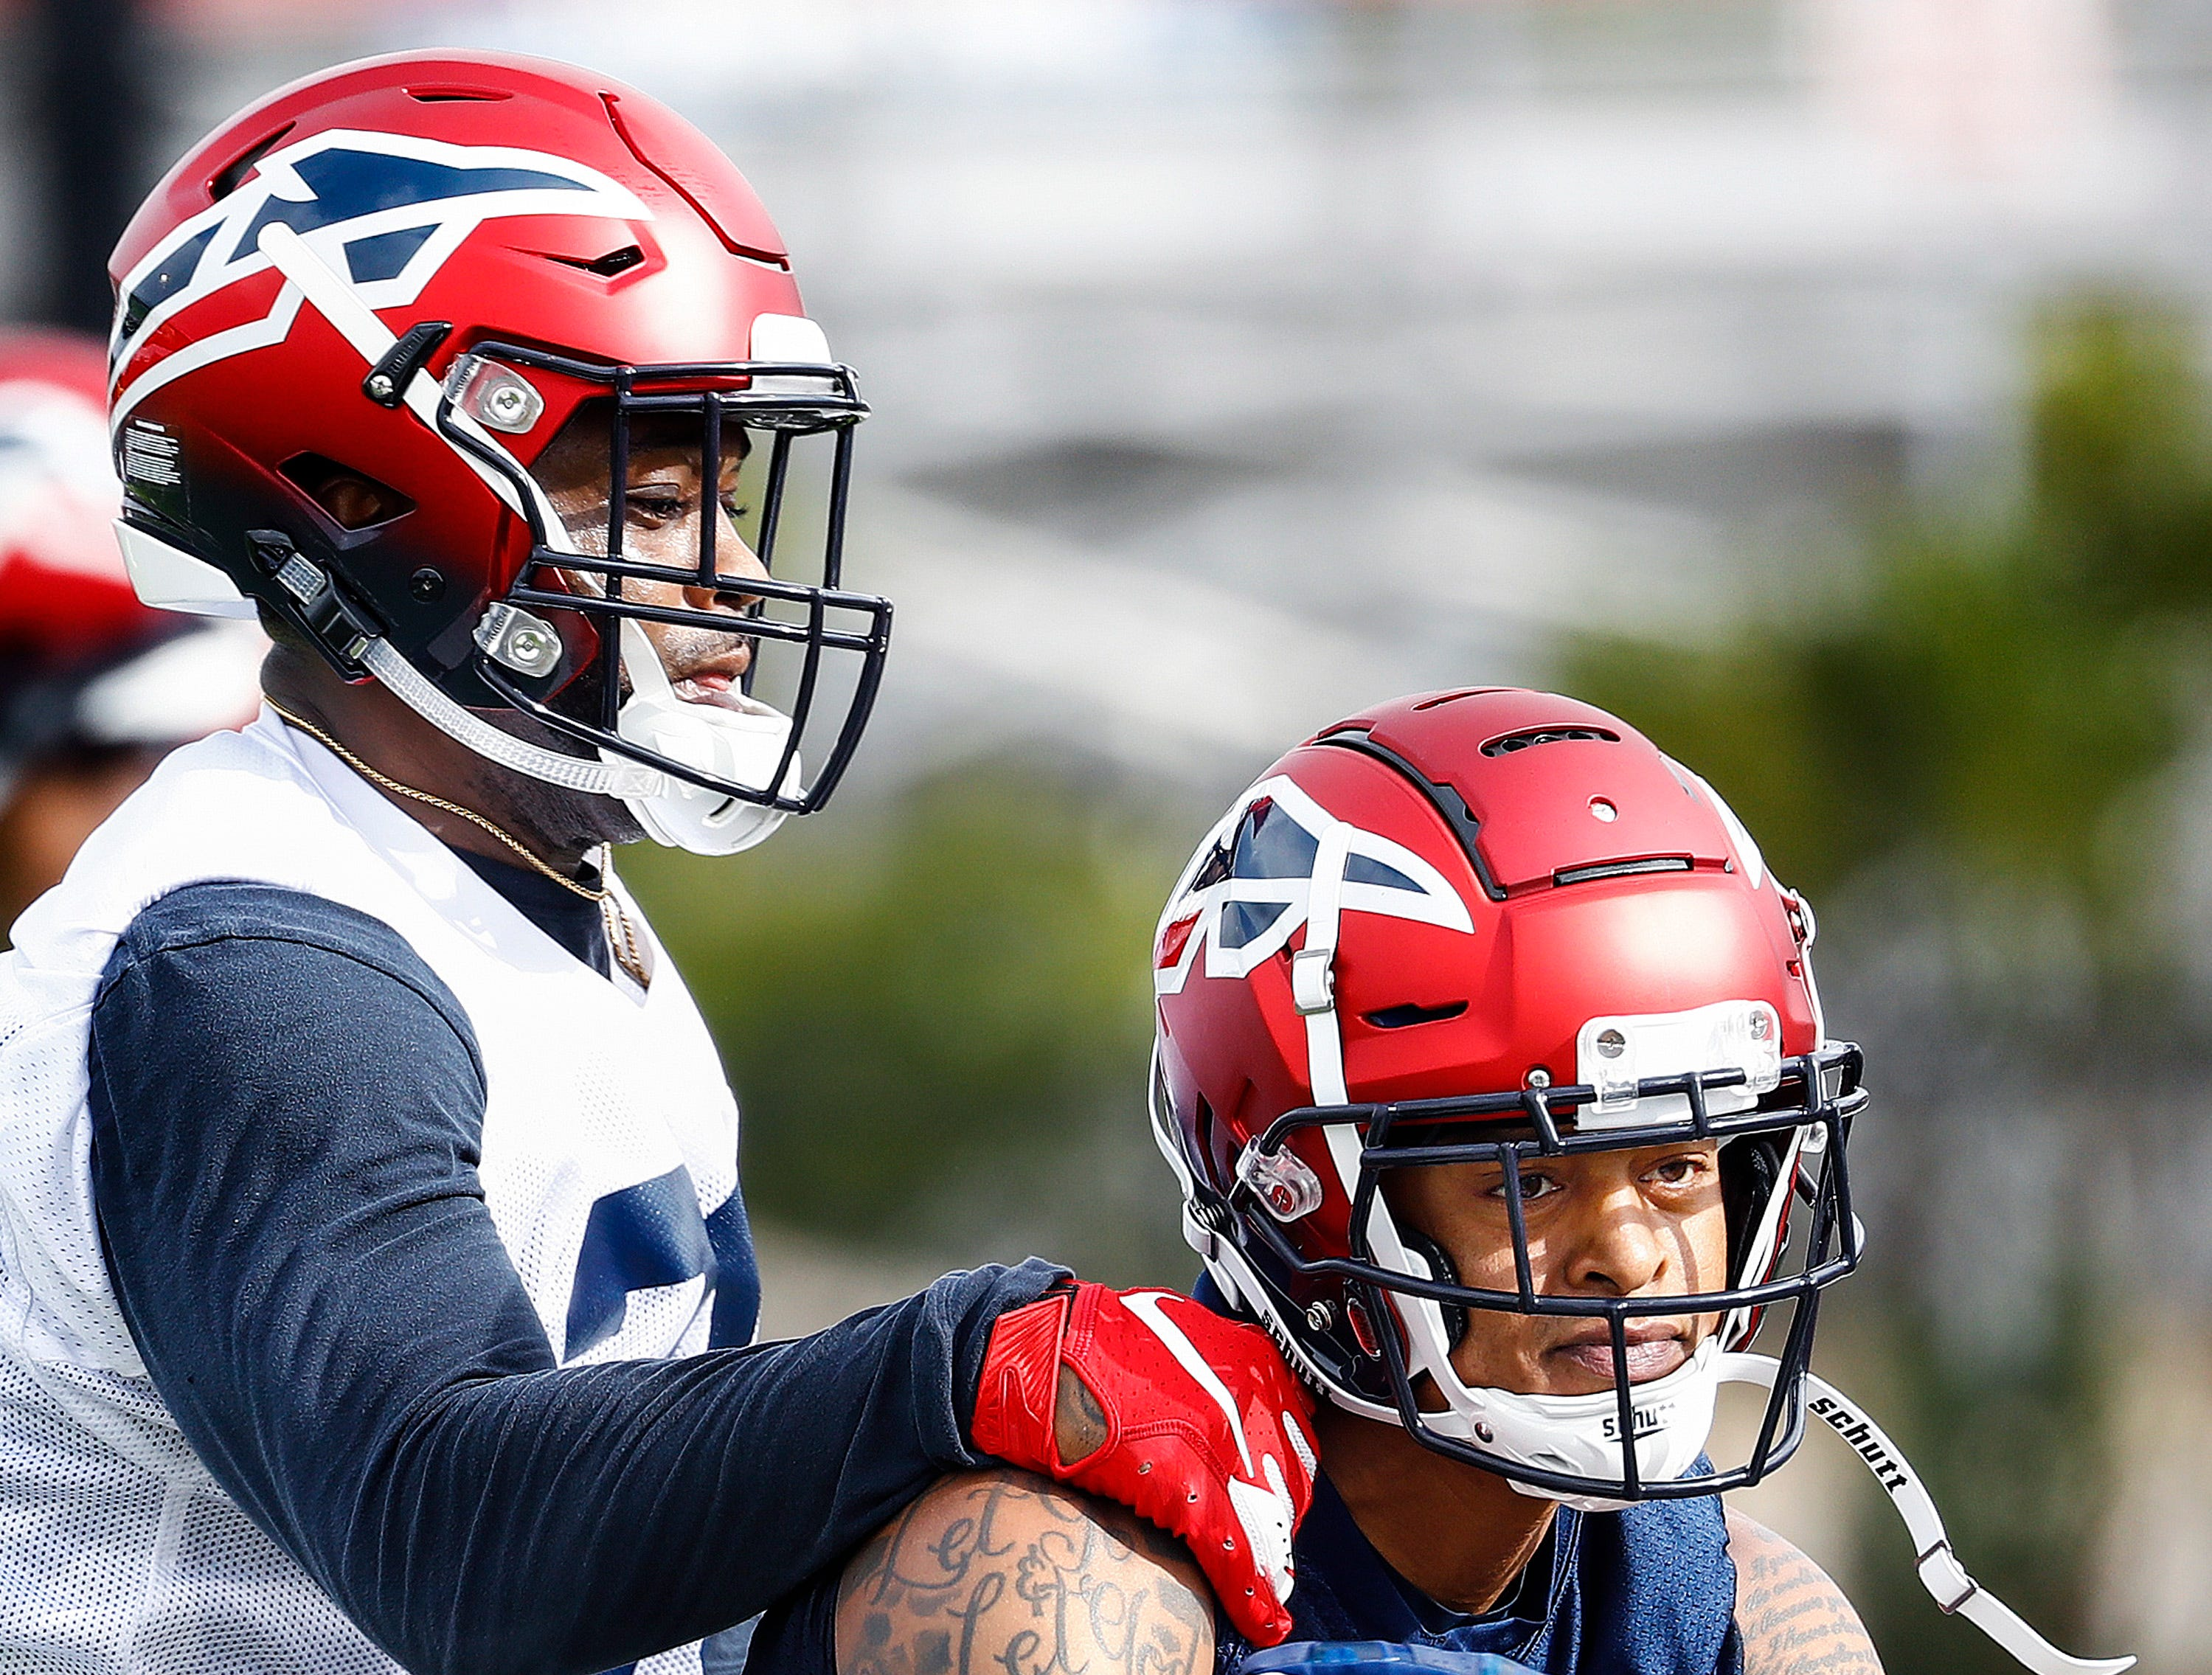 Memphis Express receiver Chris Givers (right) makes a catch in front of defender Tyree Robinson (left) during training camp in San Antonio, Texas.